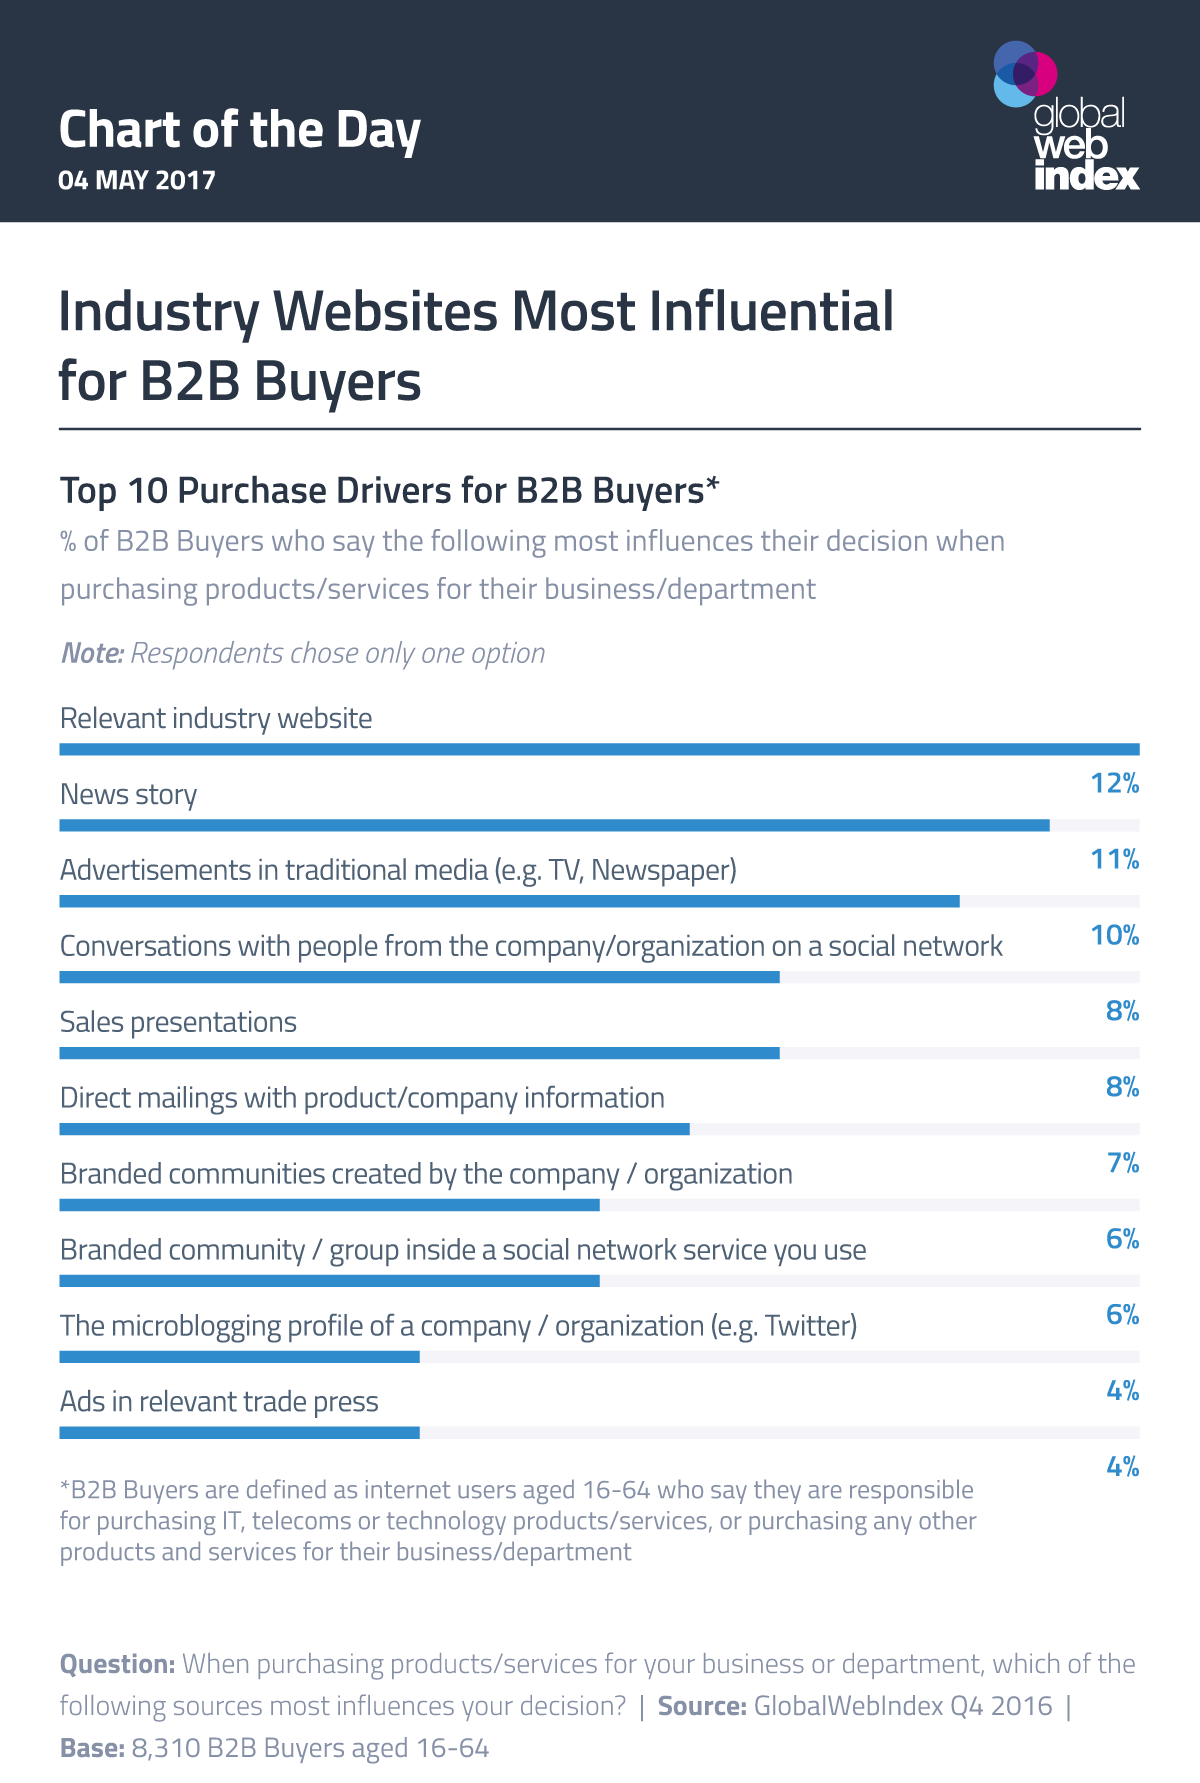 Industry Websites Most Influential for B2B Buyers